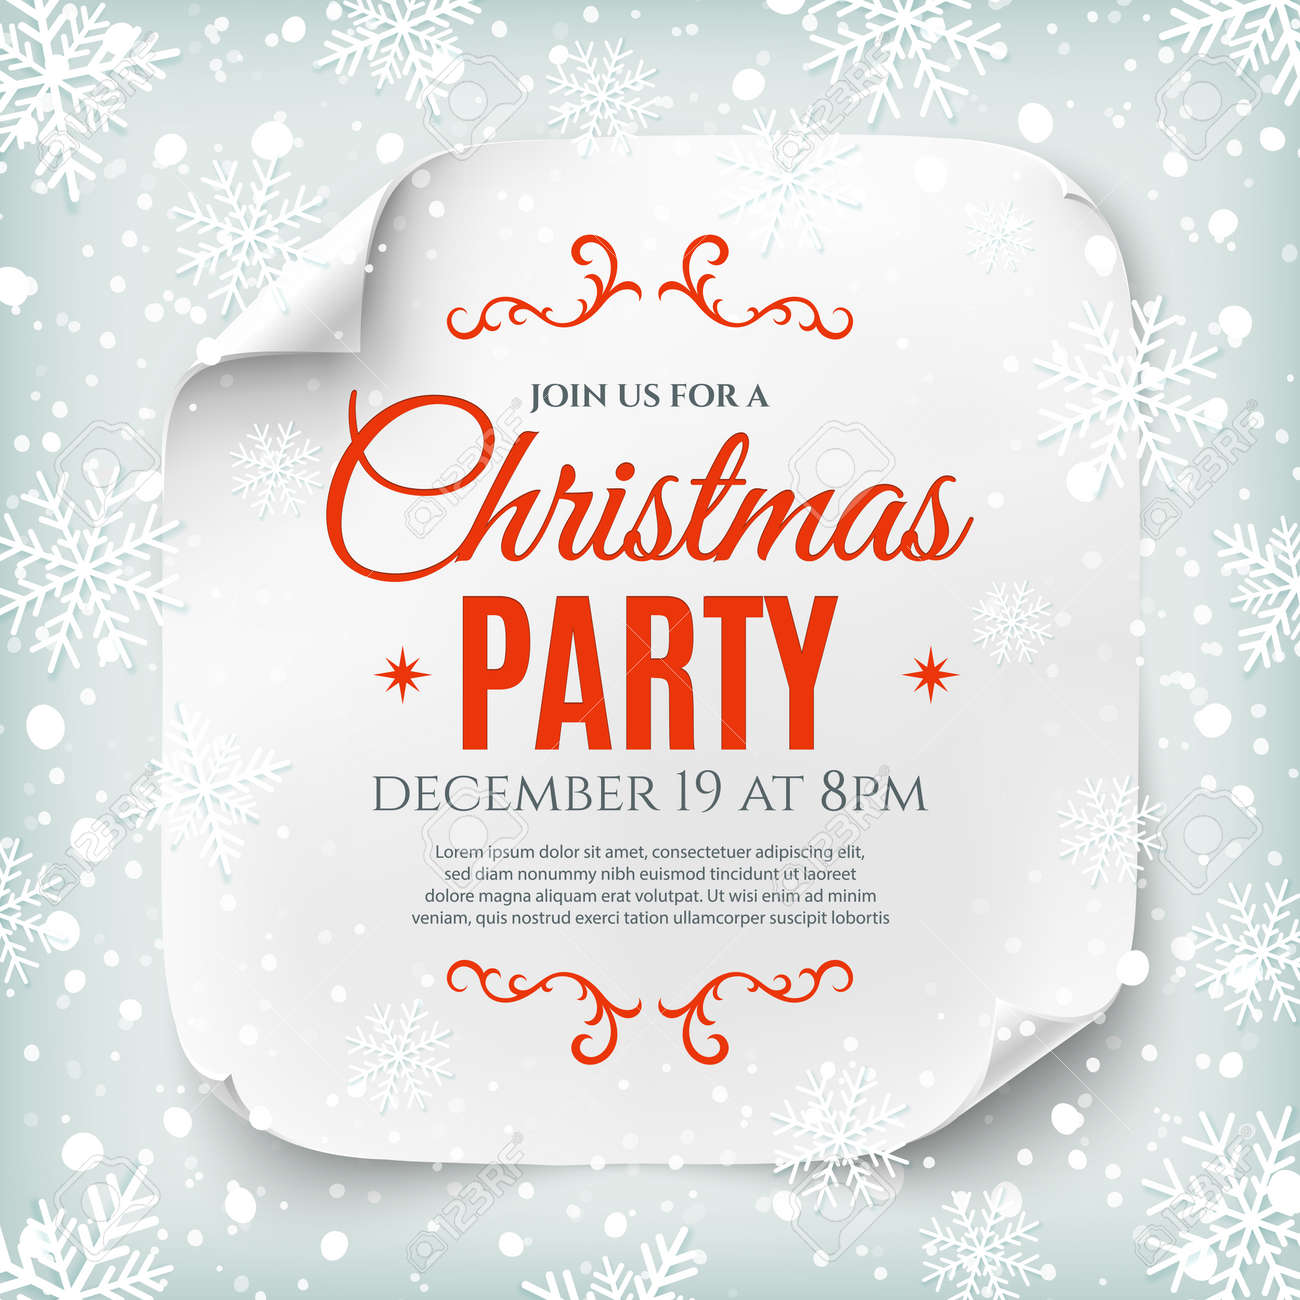 Christmas party poster template with snow and snowflakes. Christmas background. White, curved, paper banner. - 49454136